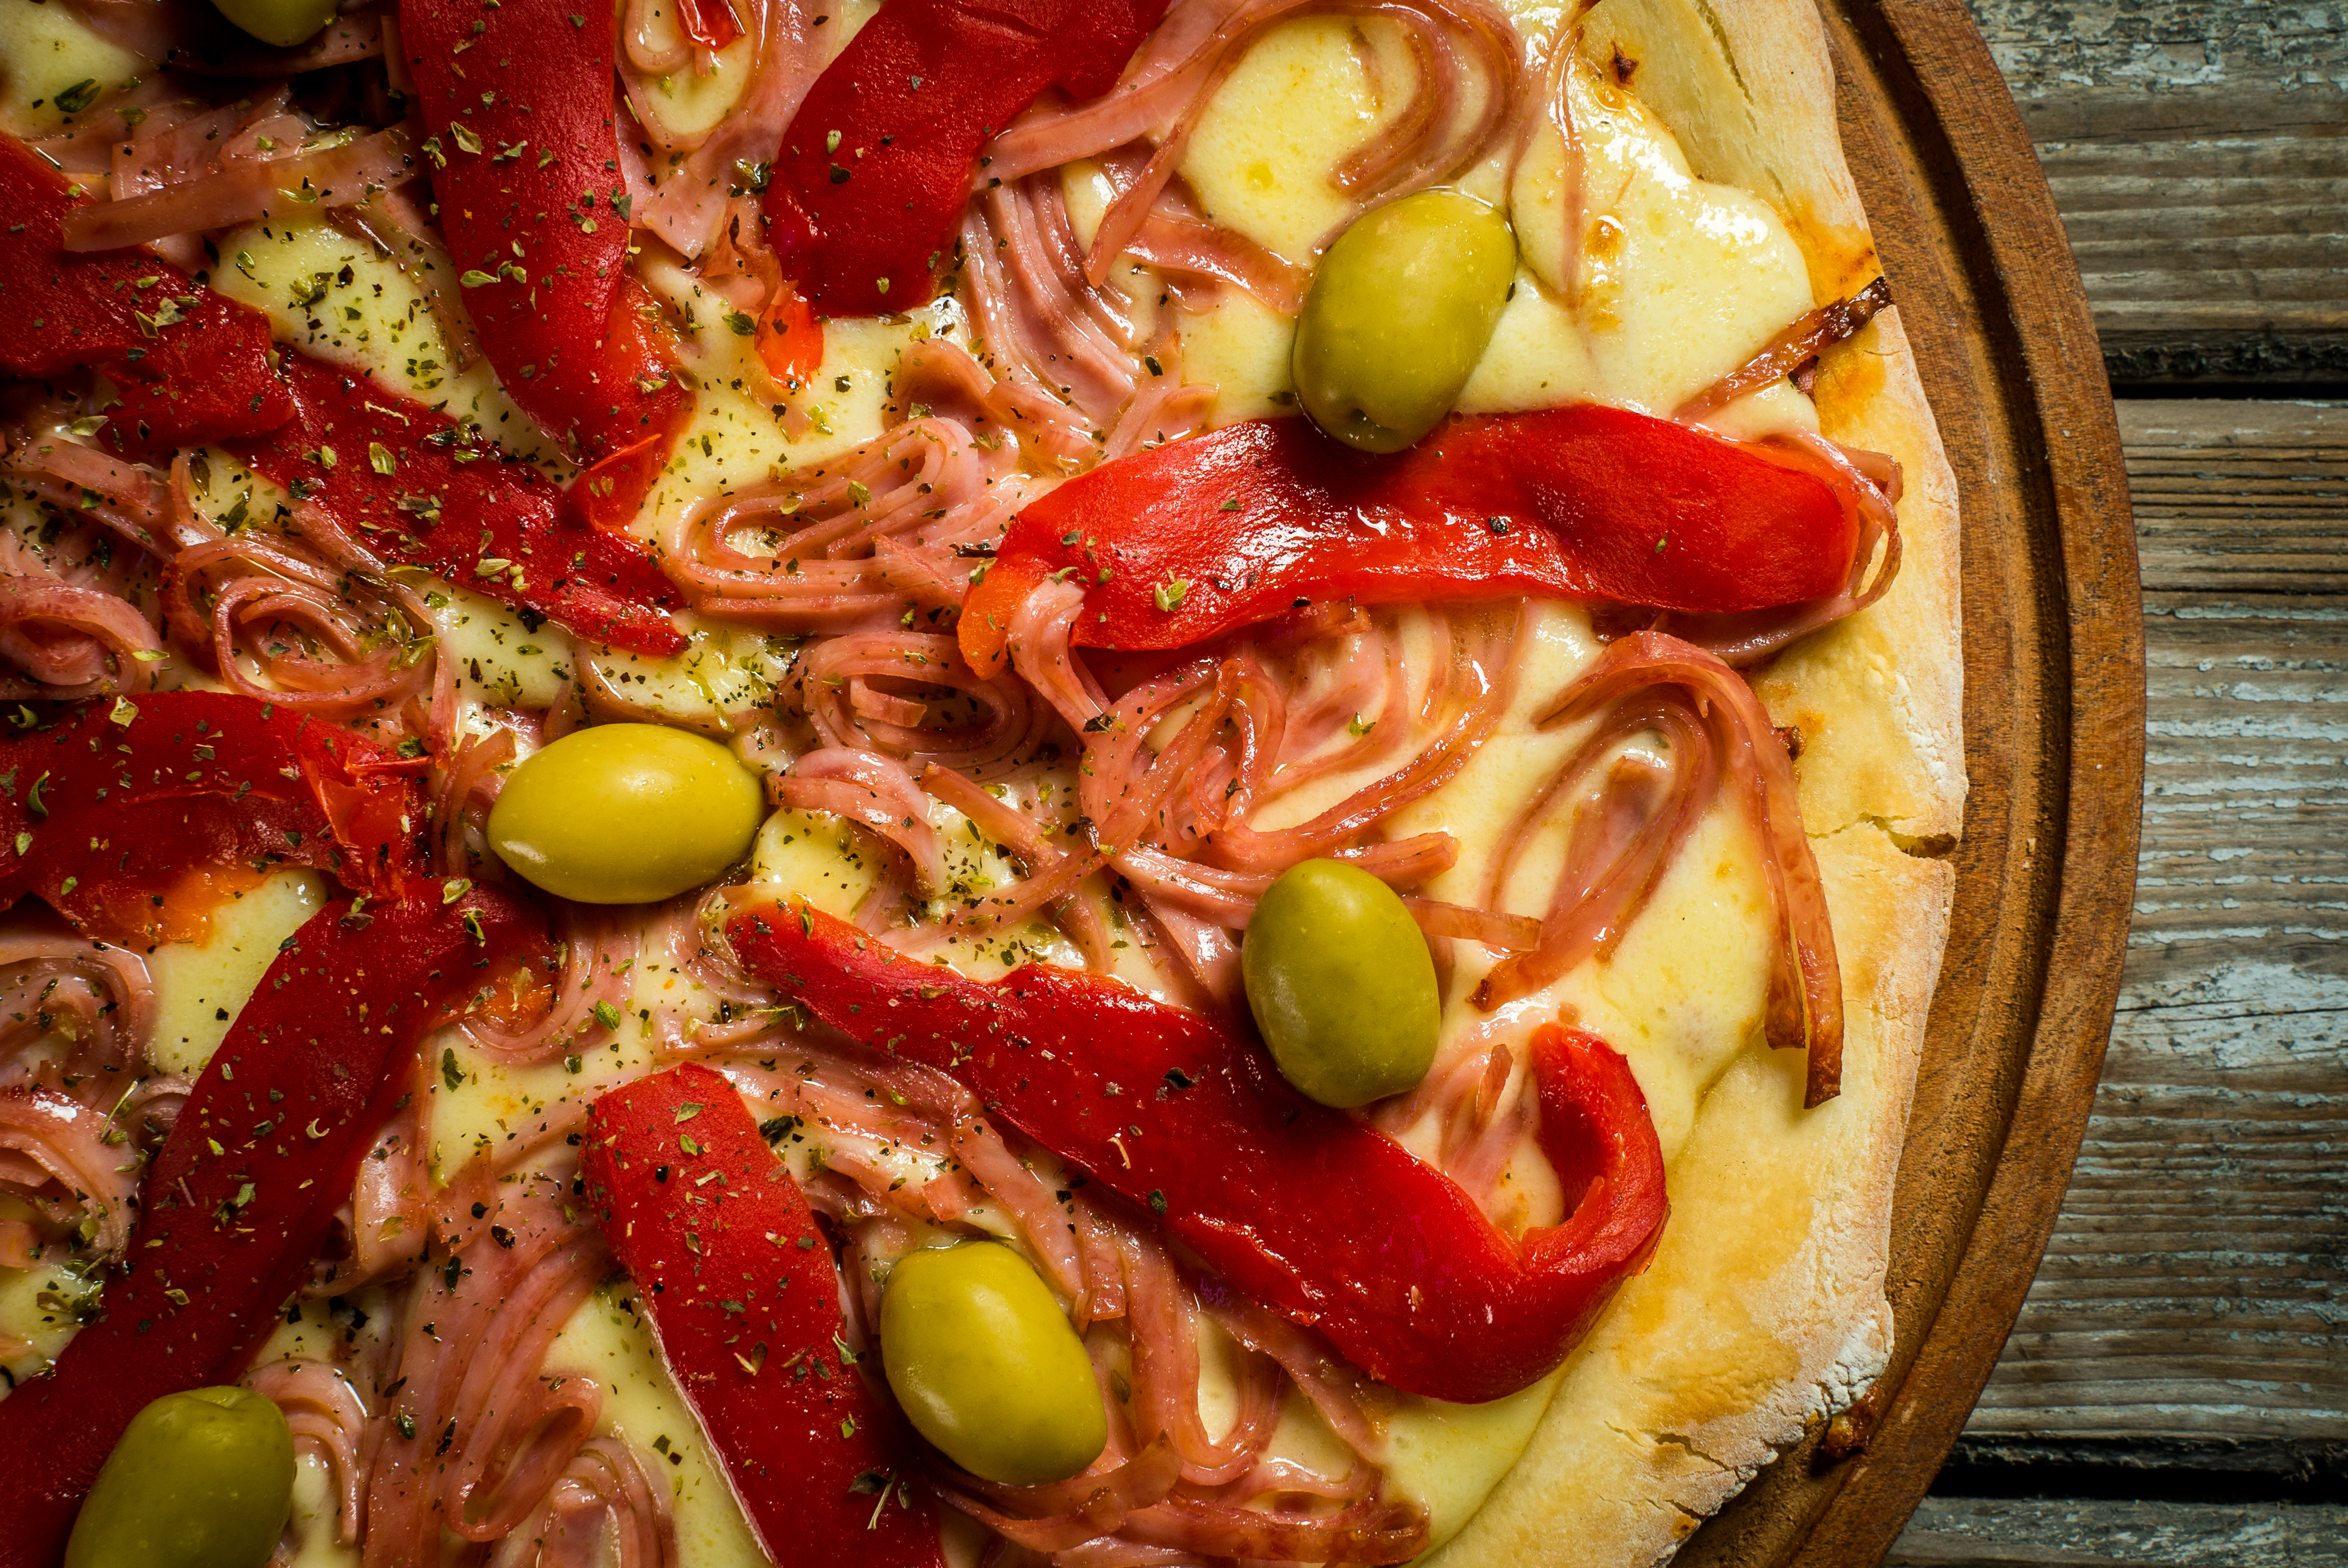 PIZZA_JAMON Y MORRONES_7